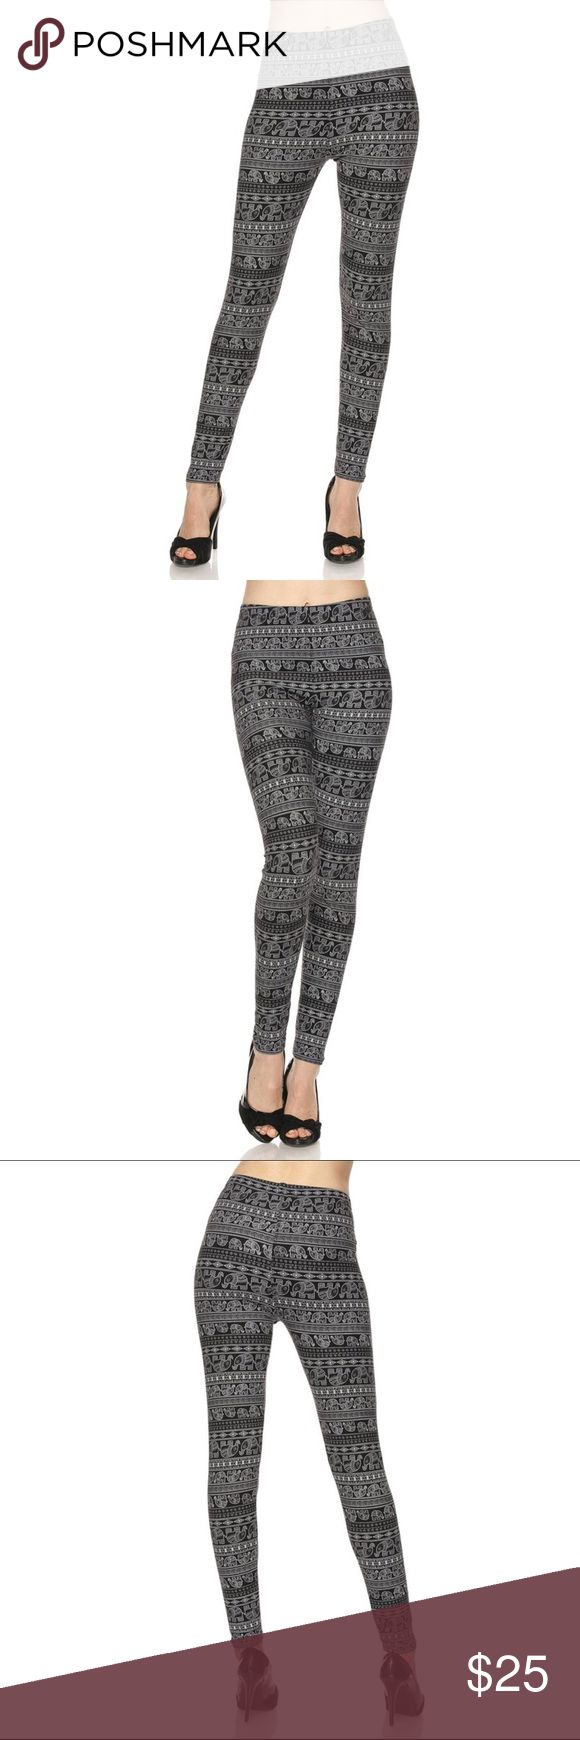 Plus Size Premium Printed Leggings Plus Free Size  If you love comfort and beauty in one package, these Printed Leggings will certainly be your THING.  All designs are handpicked to make you look elegant and slick. Leggings are of high quality and the feedback has been terrific so far.  We 100% stand by our products, love it OR leave it.   **PLUS SIZING**  Plus (one size fits most juicy ladies) : Fits 1XL, XXL, XXXL ----> US Size 12 to 22  344 plus Pants Leggings